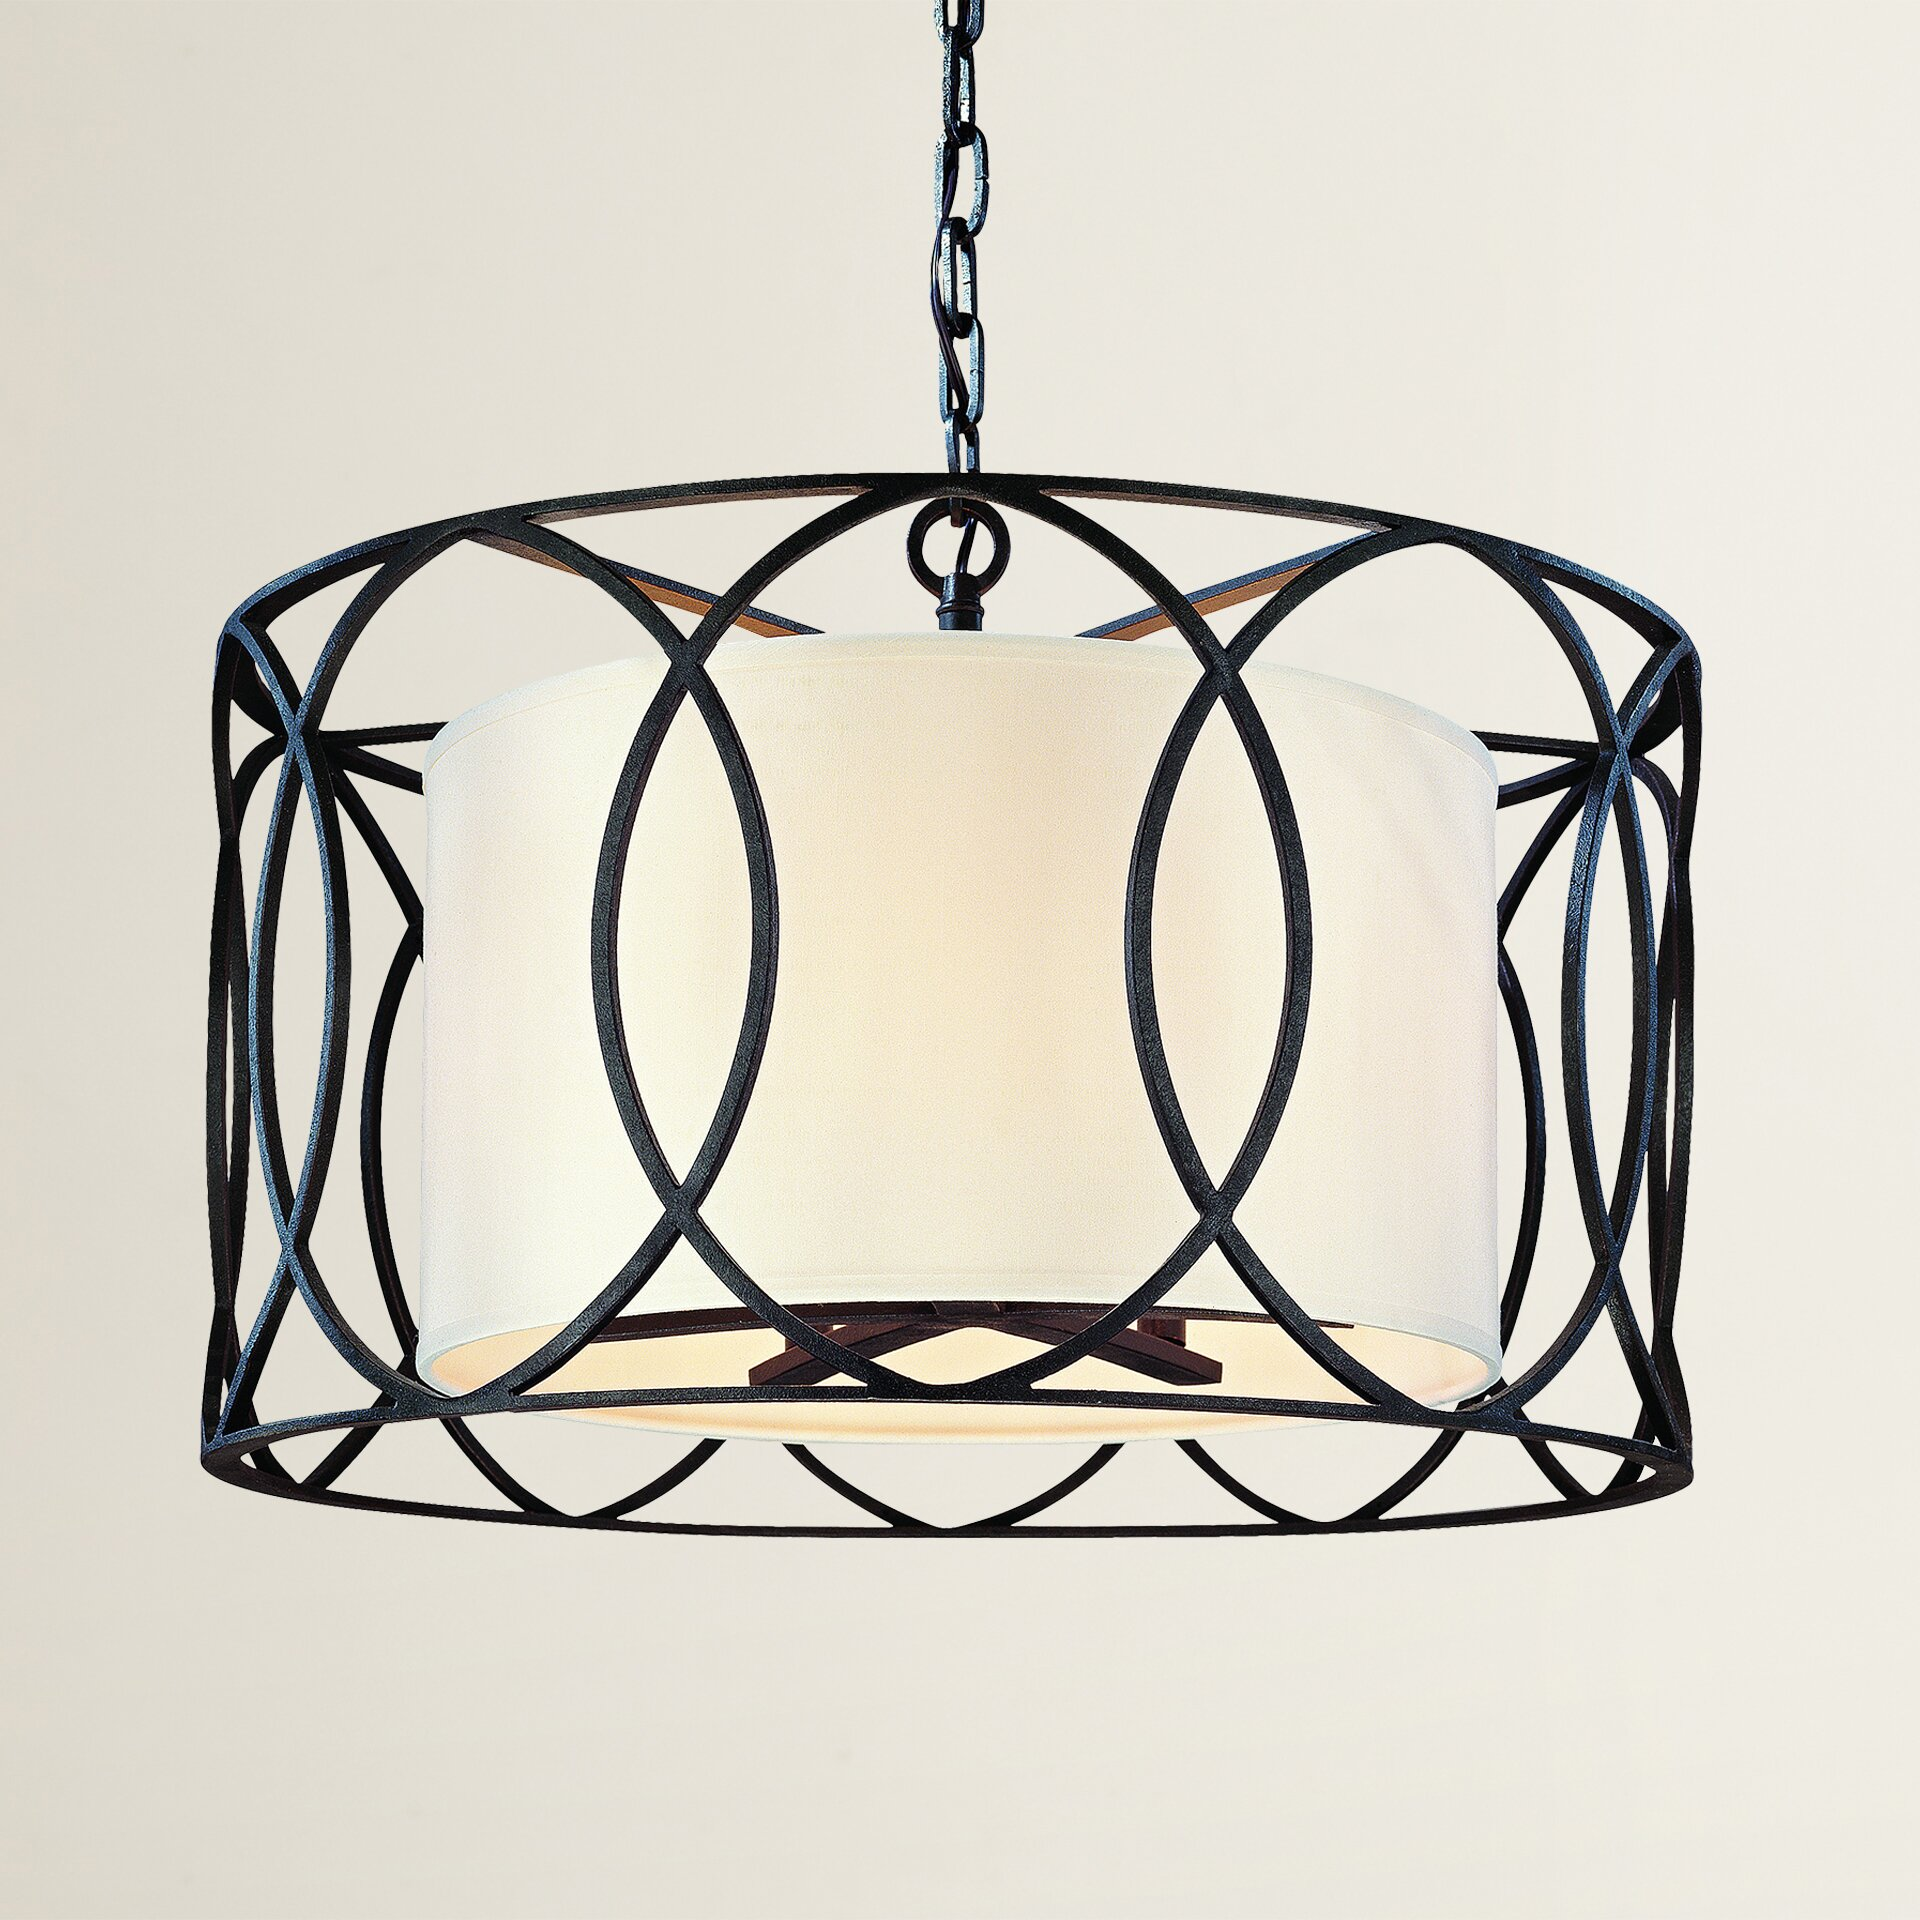 Wayfair Dining Room Lighting: Brayden Studio Balducci 5 Light Dining Foyer Pendant